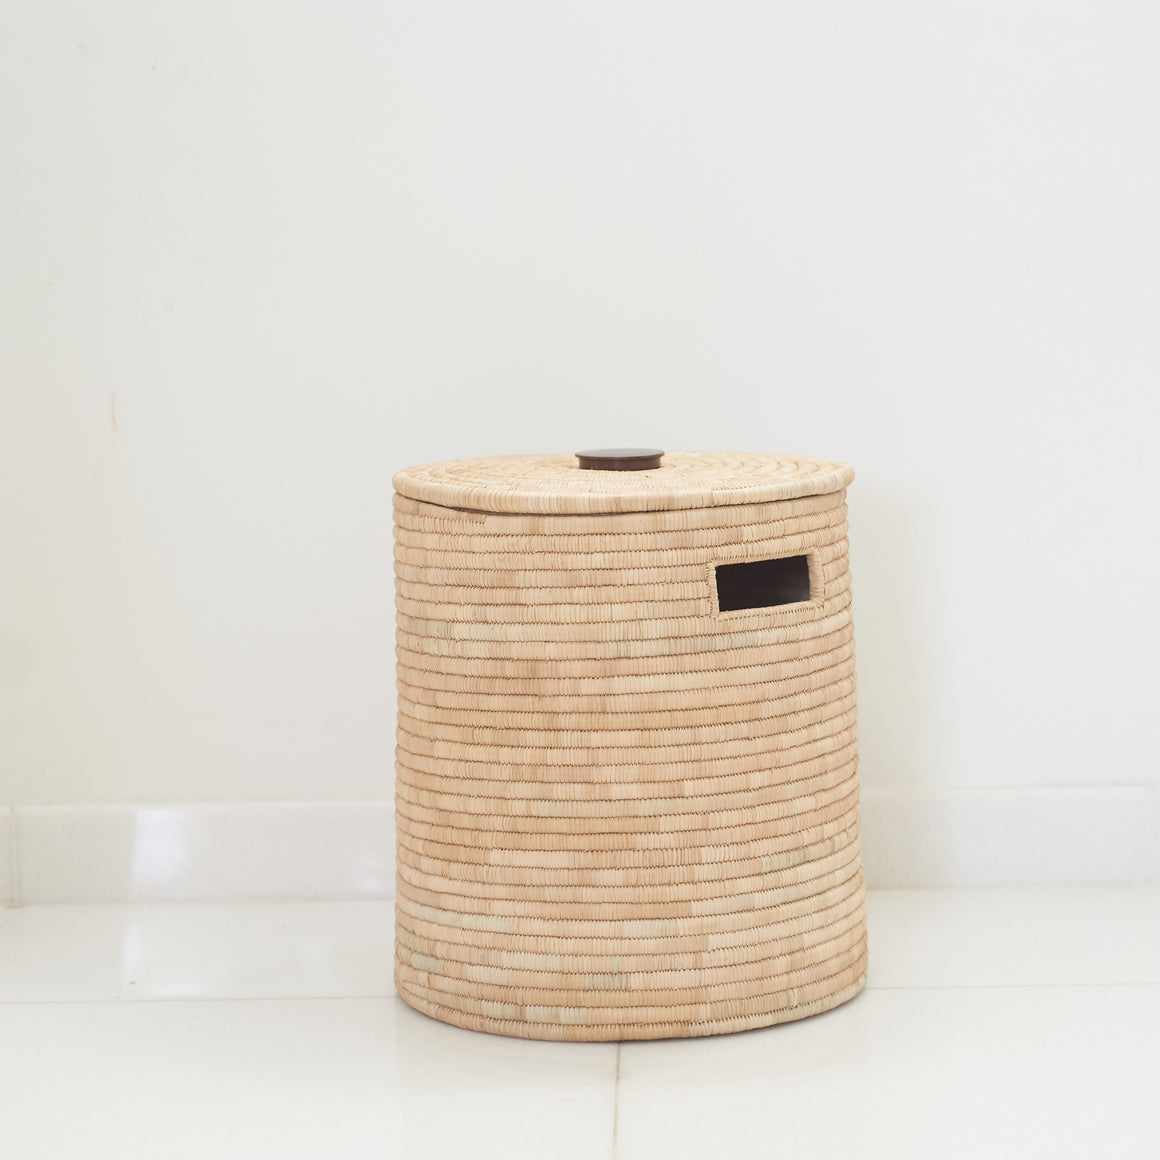 Malawi Palm Leaf Washing Basket With Mahogany Handle, Natural